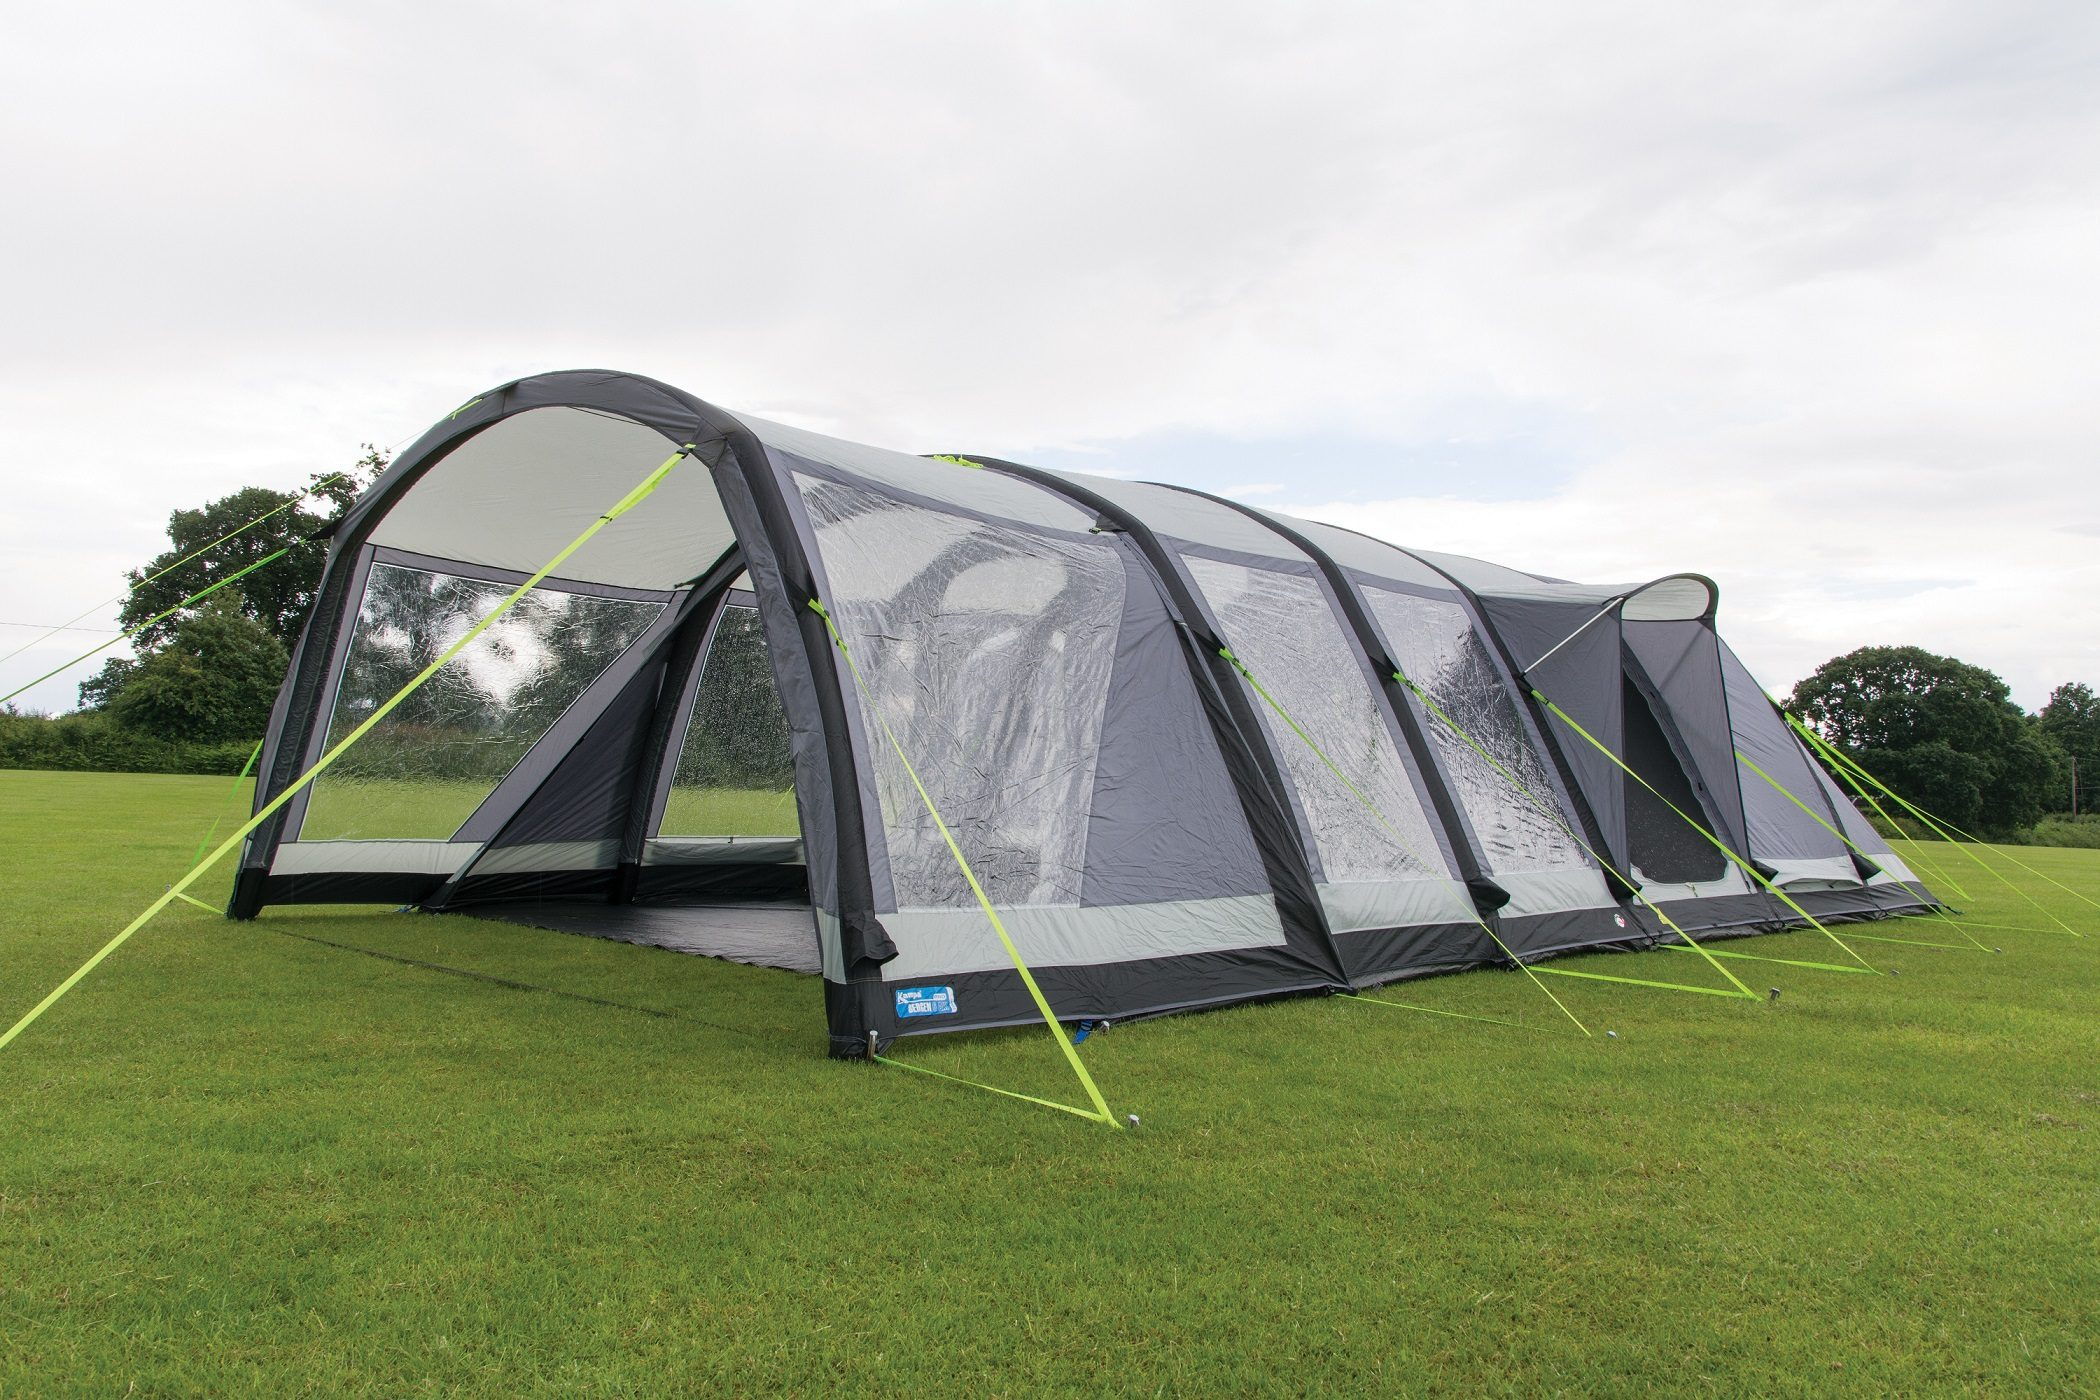 Canopies And Accessories : Kampa tent accessories norwich camping